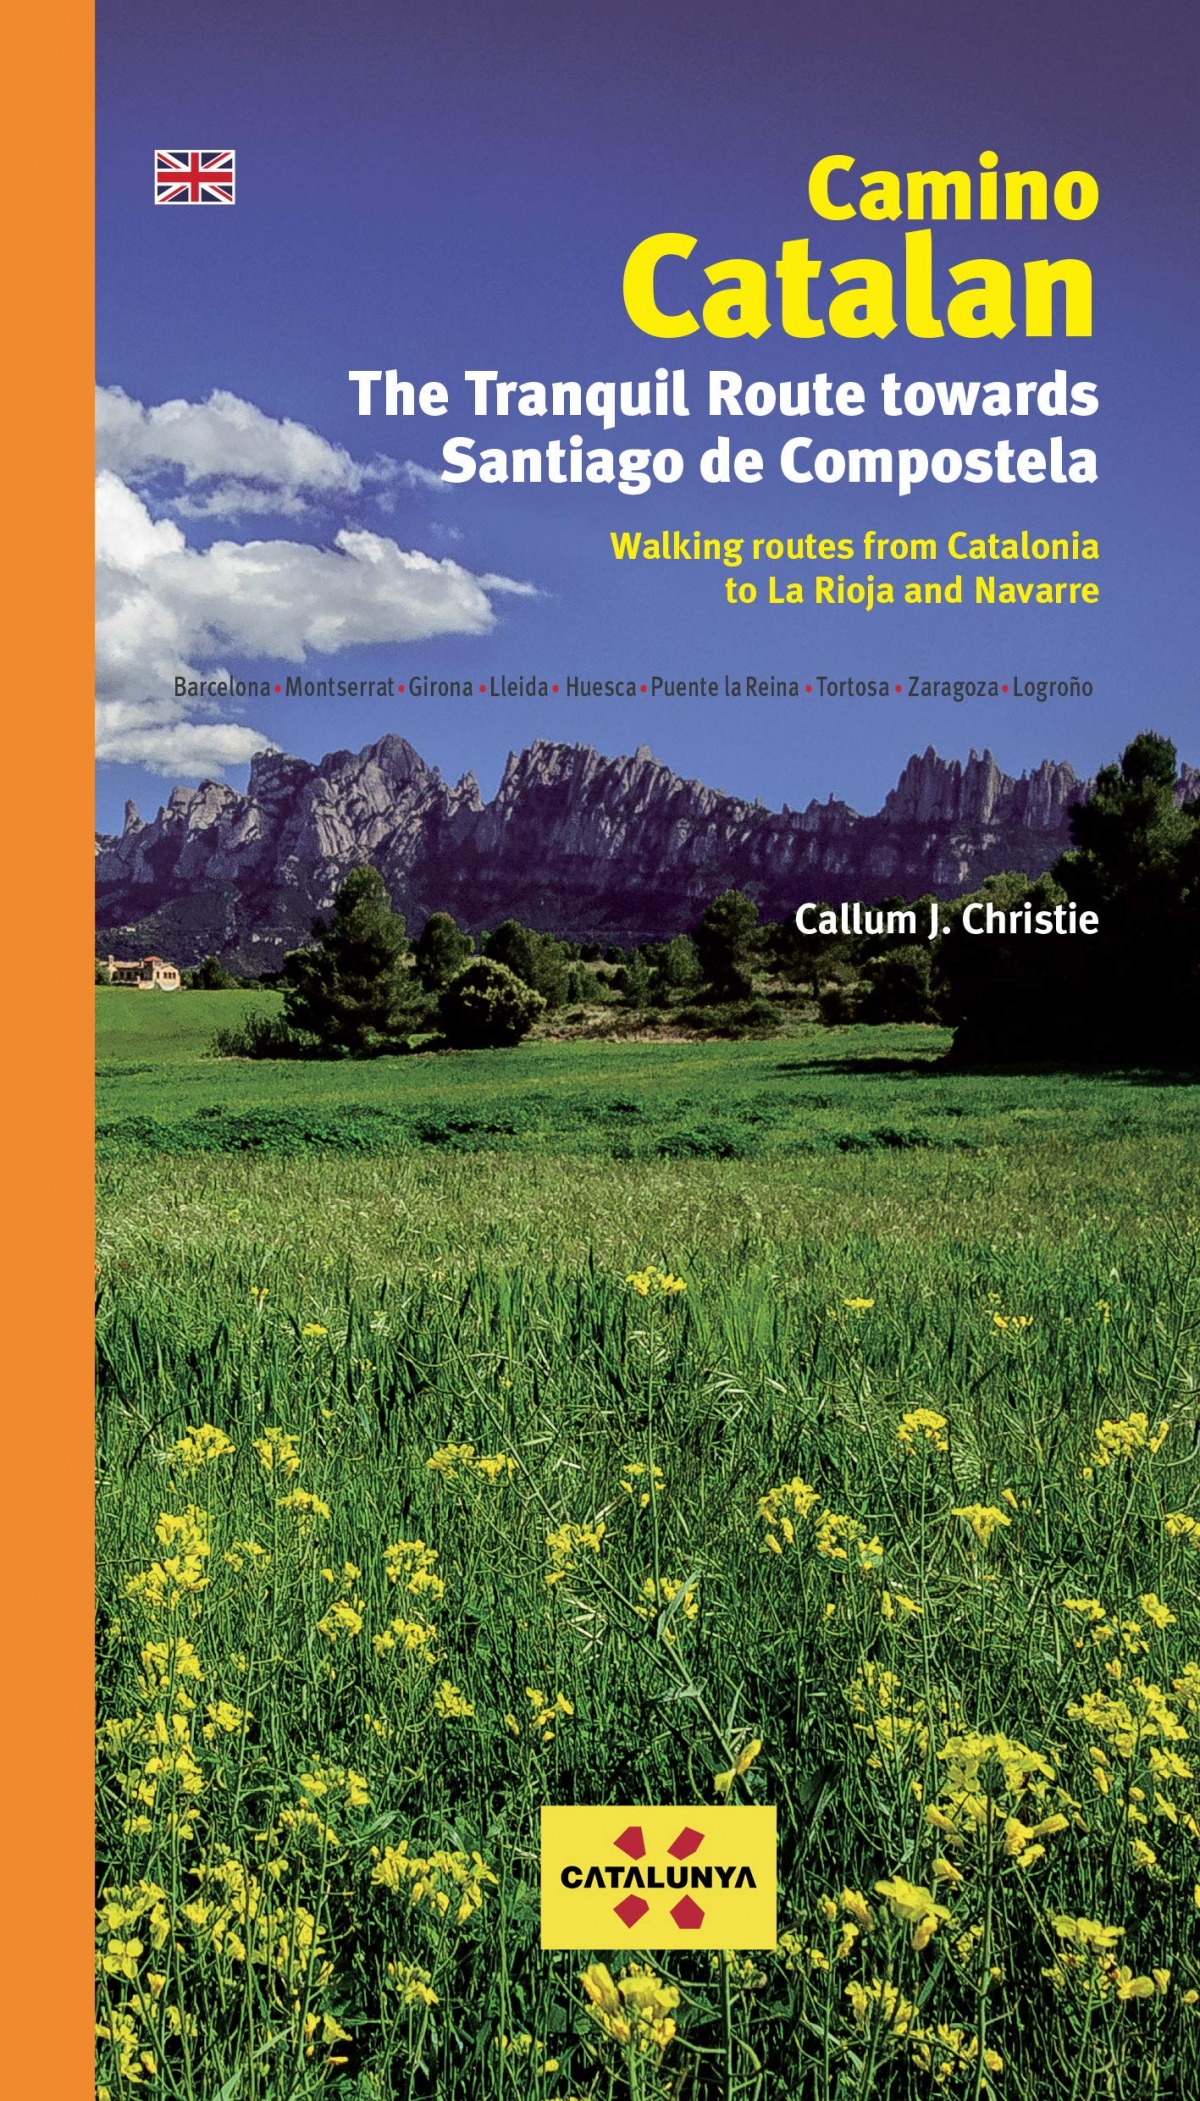 CAMINO CATALAN. THE TRANQUIL ROUTE TOWARDS SANTIAGO